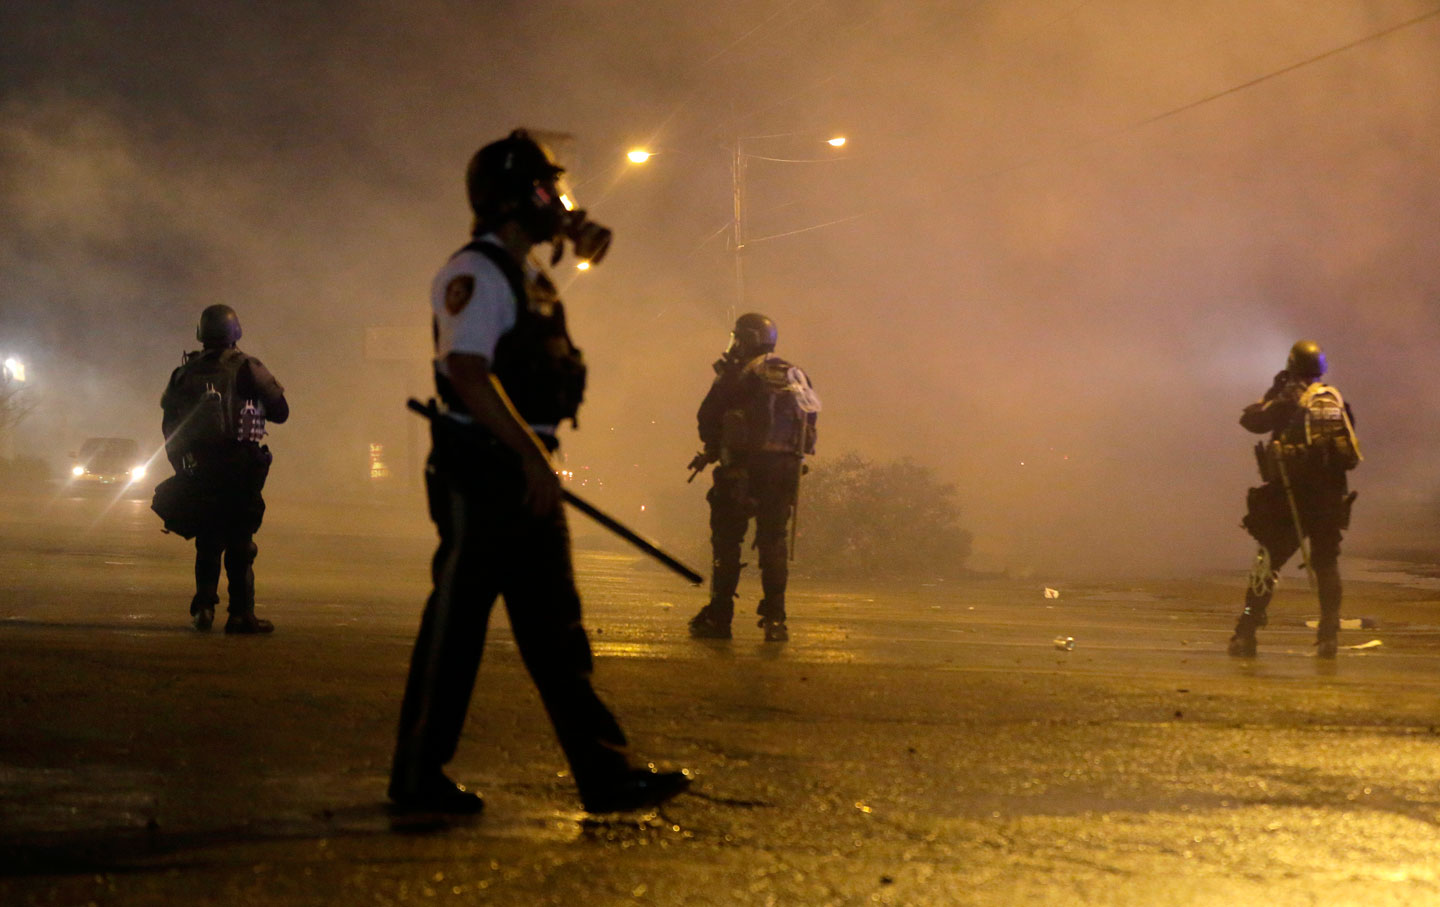 Baltimore police supressing protests against police brutality